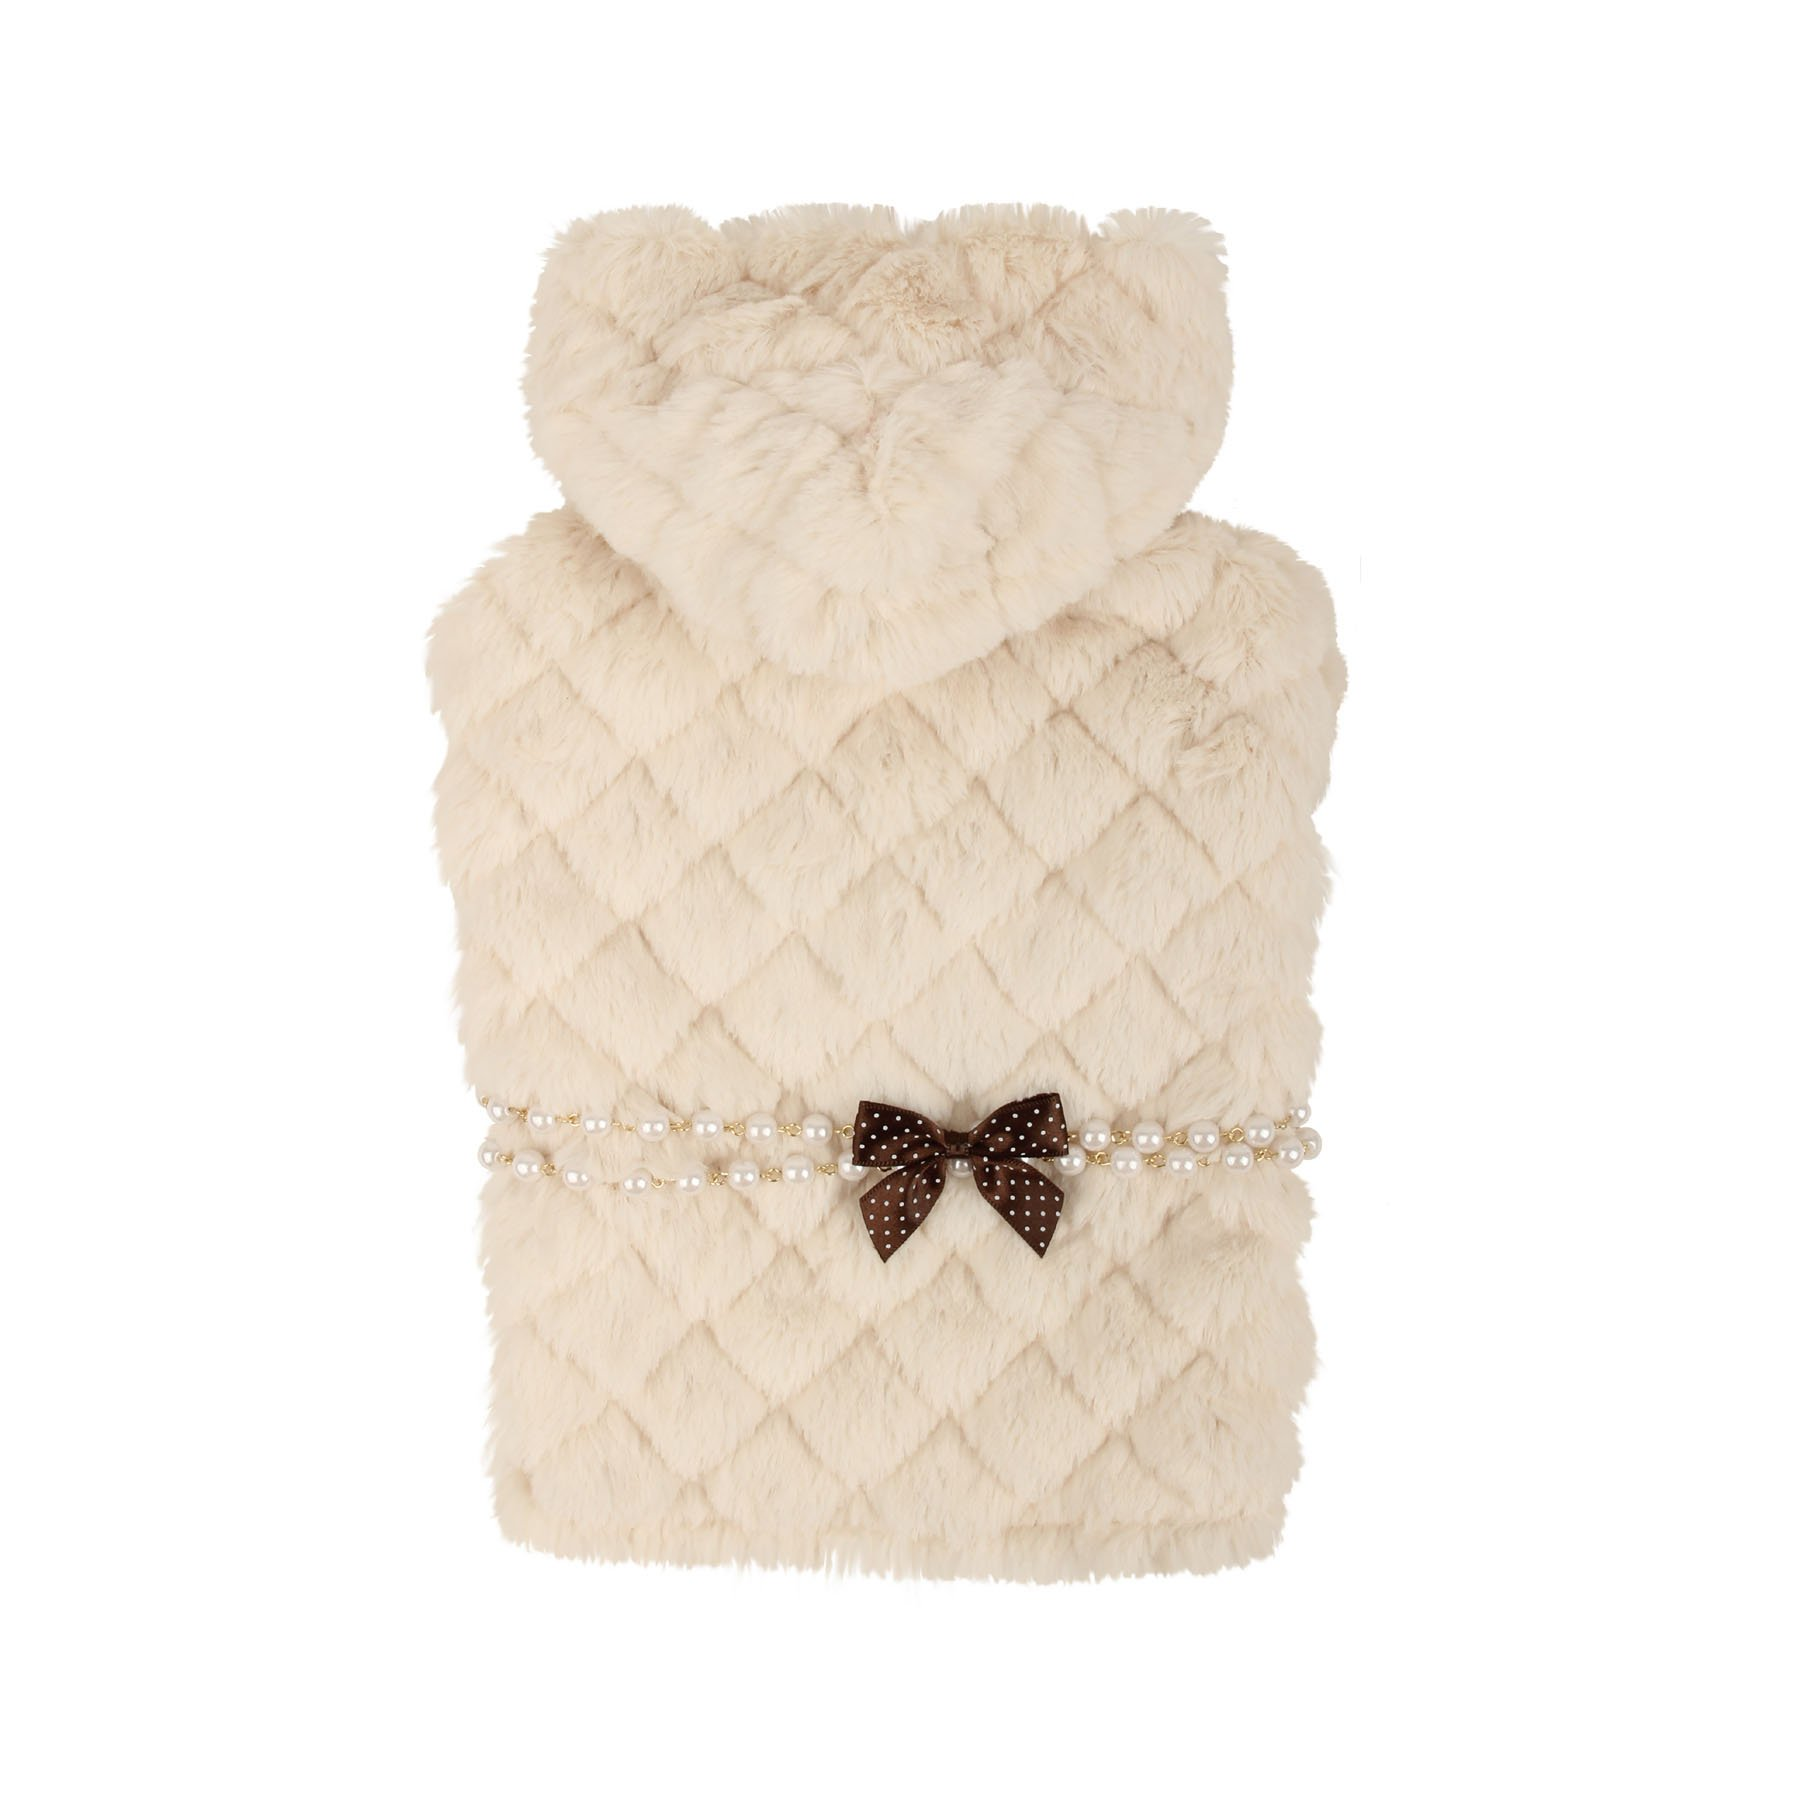 Pinkaholic New York Faux Fur Hooded Pet Arctic Cape, Large, Ivory by Pinkaholic New York